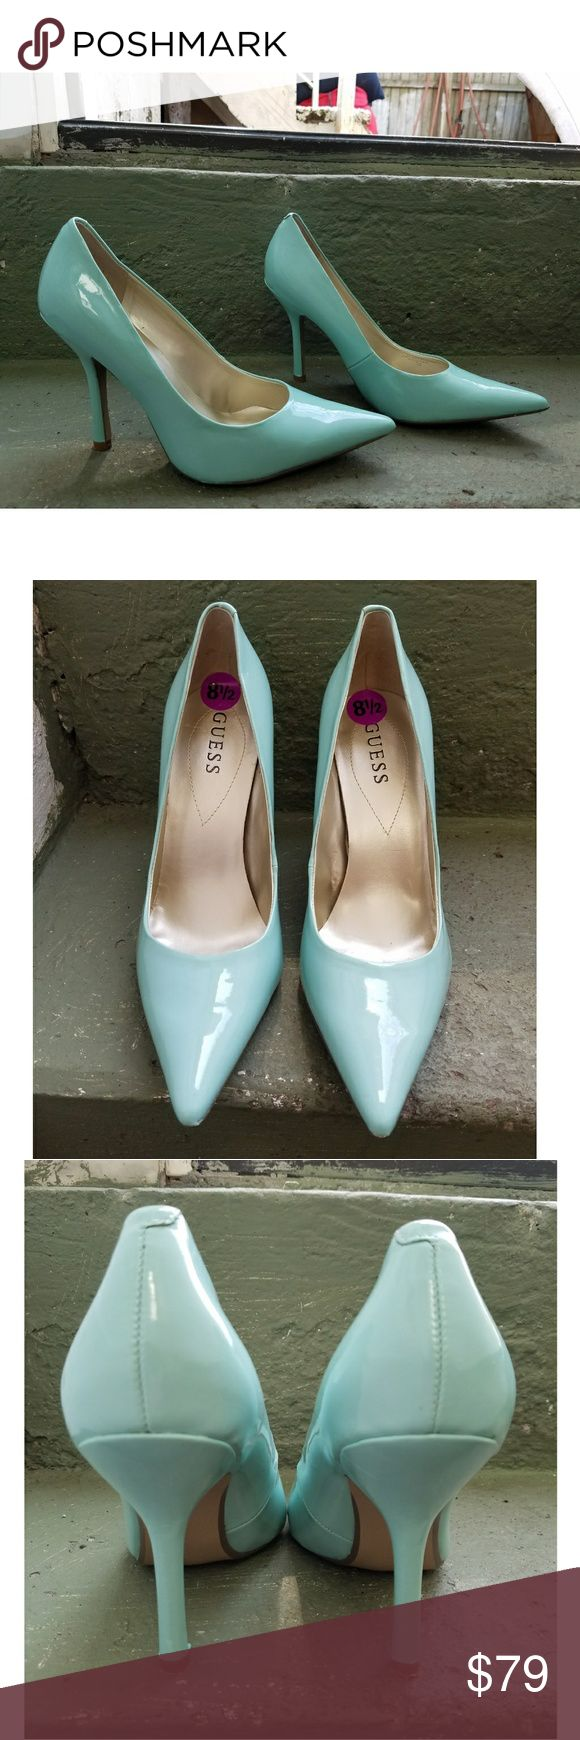 """GUESS Mint/Light Green Coral Heels Shoes Sz 8 1/2M These GUESS heels are in excellent used condition. Light green colored. Heel: High (3 in. and Up). Size: 8 1/2M. Brand: Guess. Super sexy! """"PRICE FIRM"""" Guess Shoes Heels"""